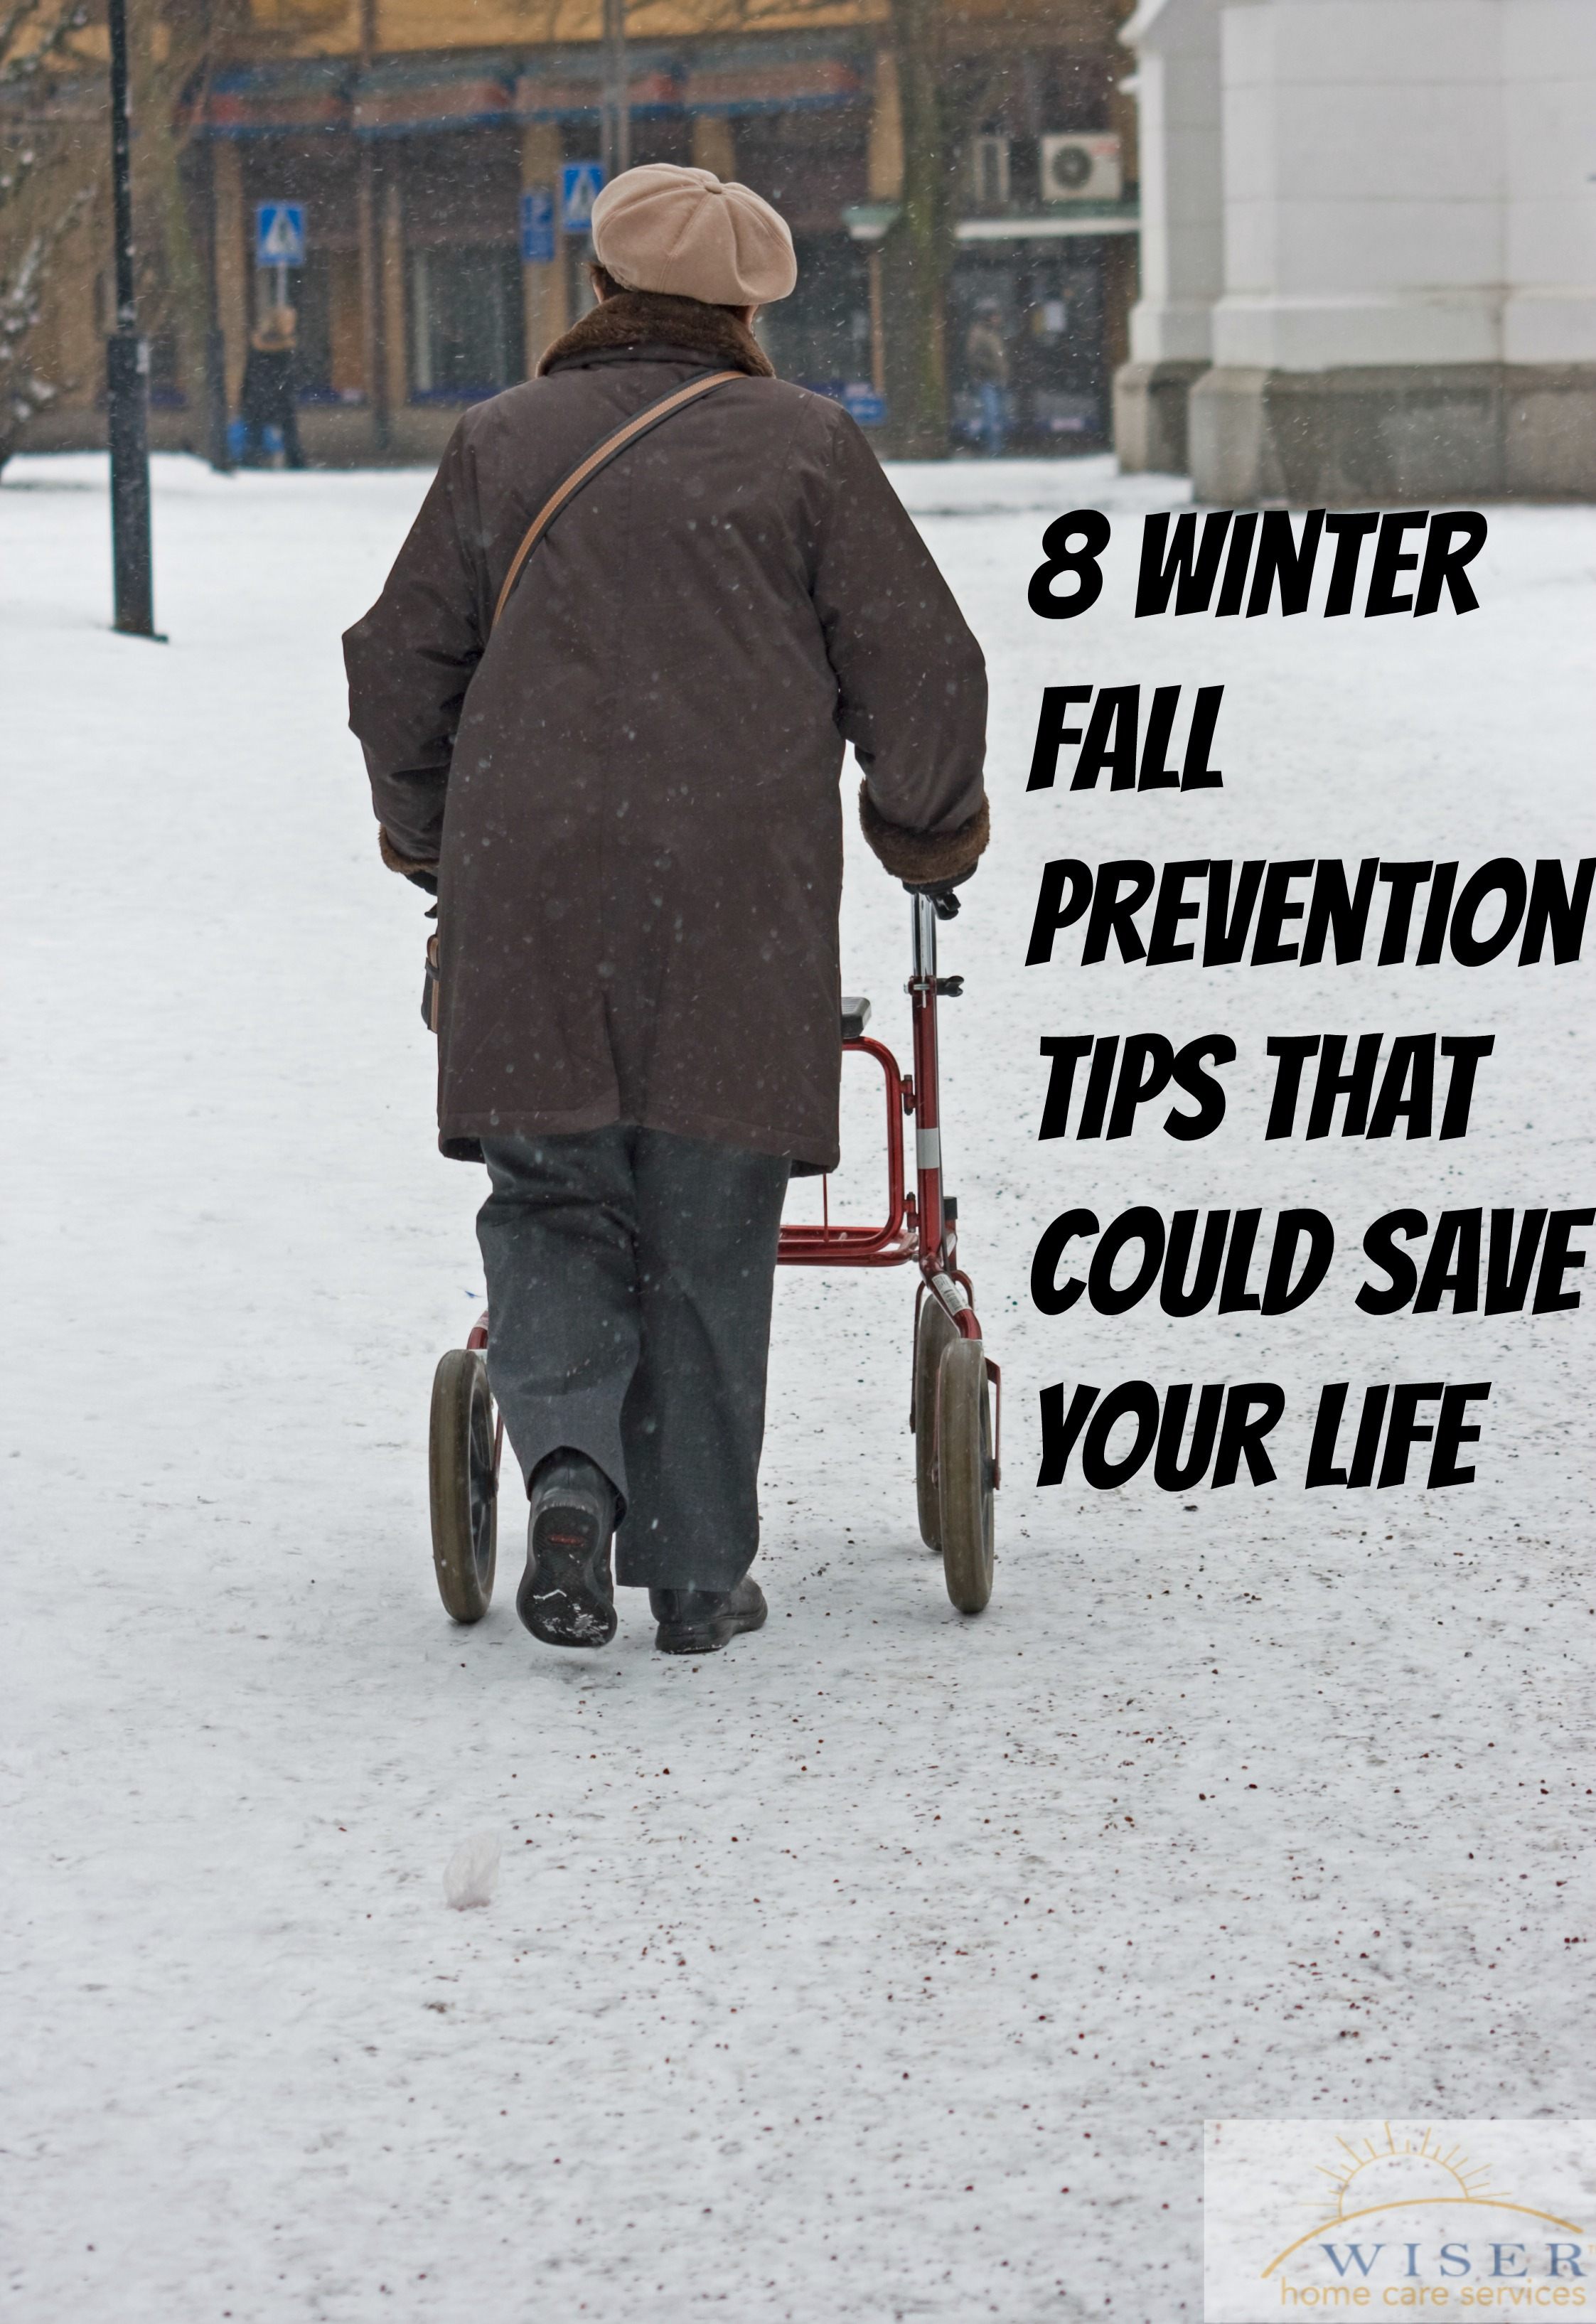 Slippery winter conditions greatly increases your elderly loved ones chances of a fall. These 8 tips could save their life!